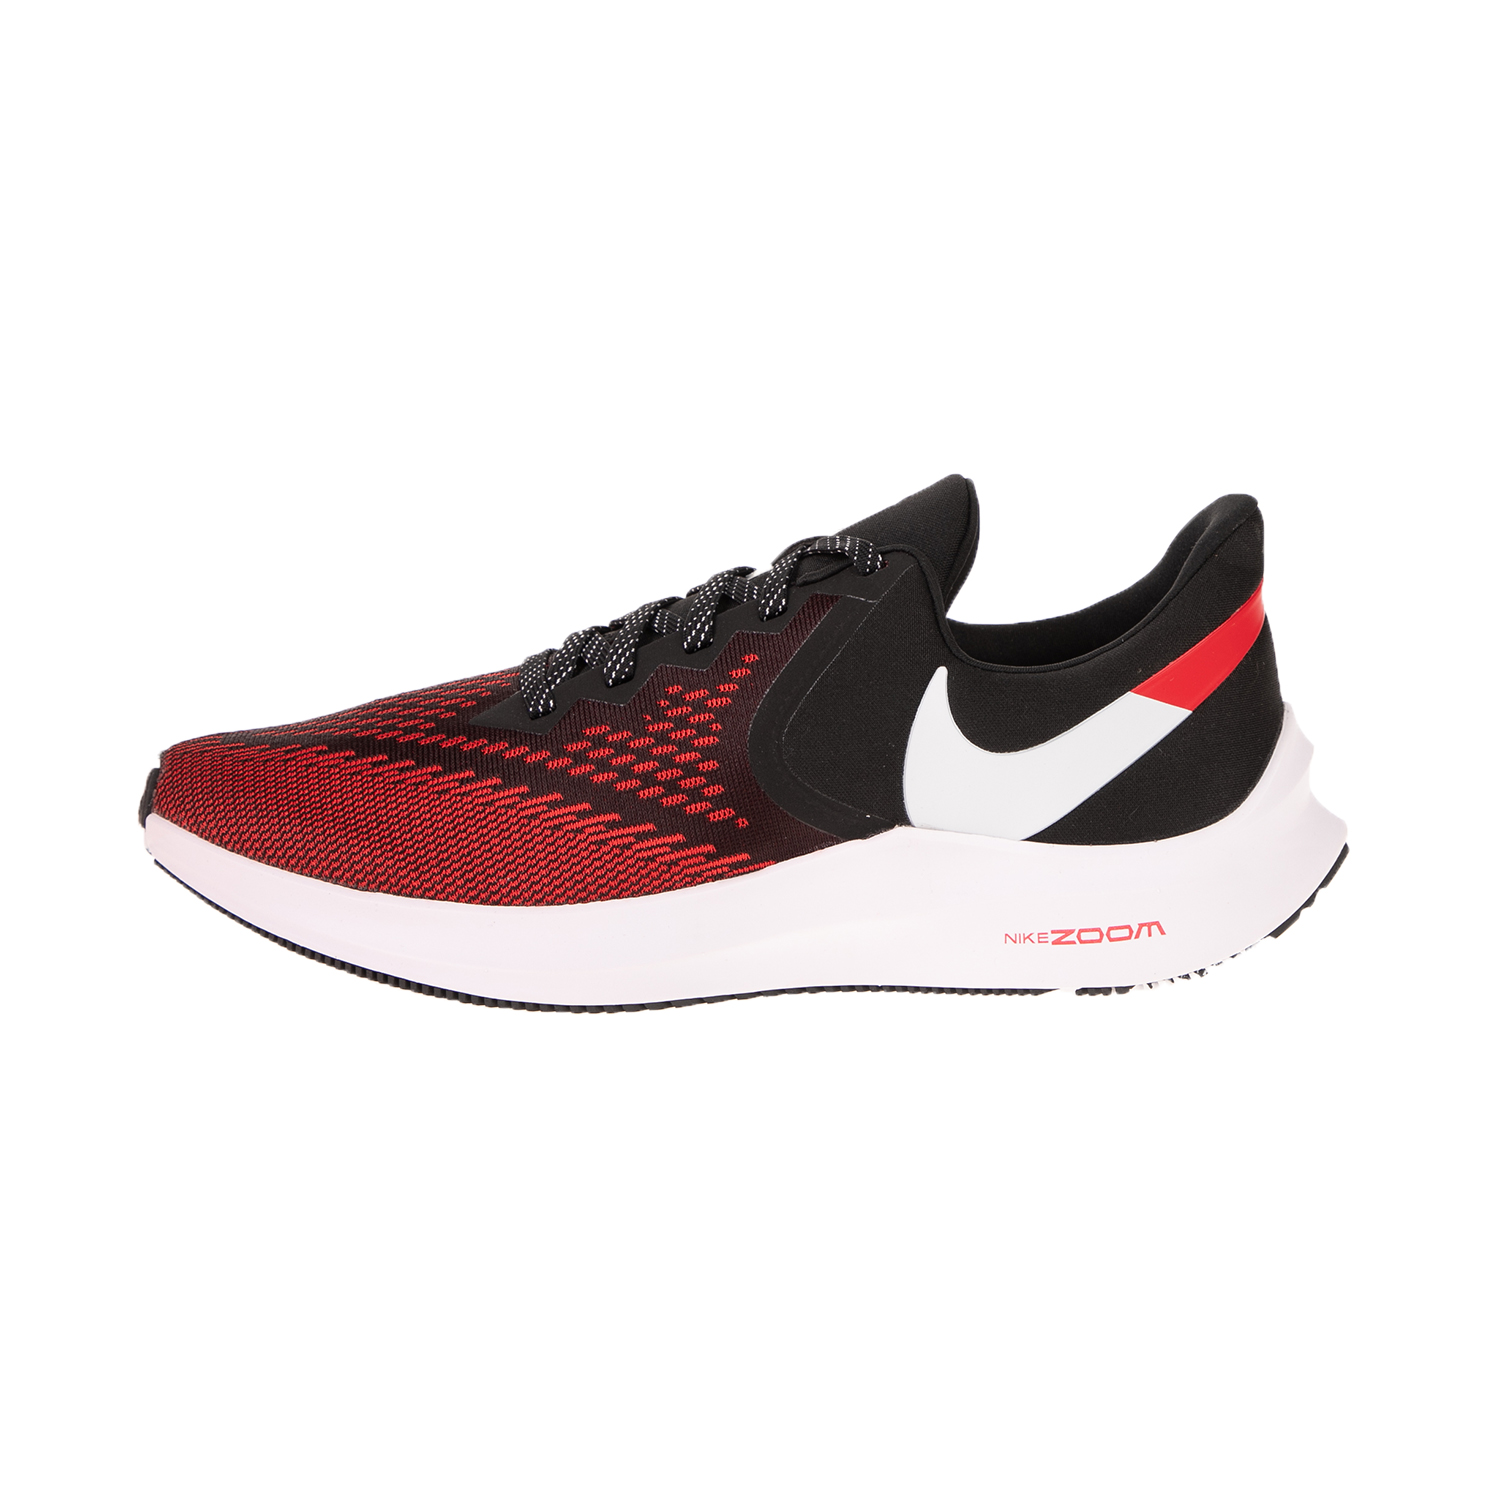 NIKE – Ανδρικά παπούτσια running NIKE ZOOM WINFLO 6 κόκκινα μαύρα